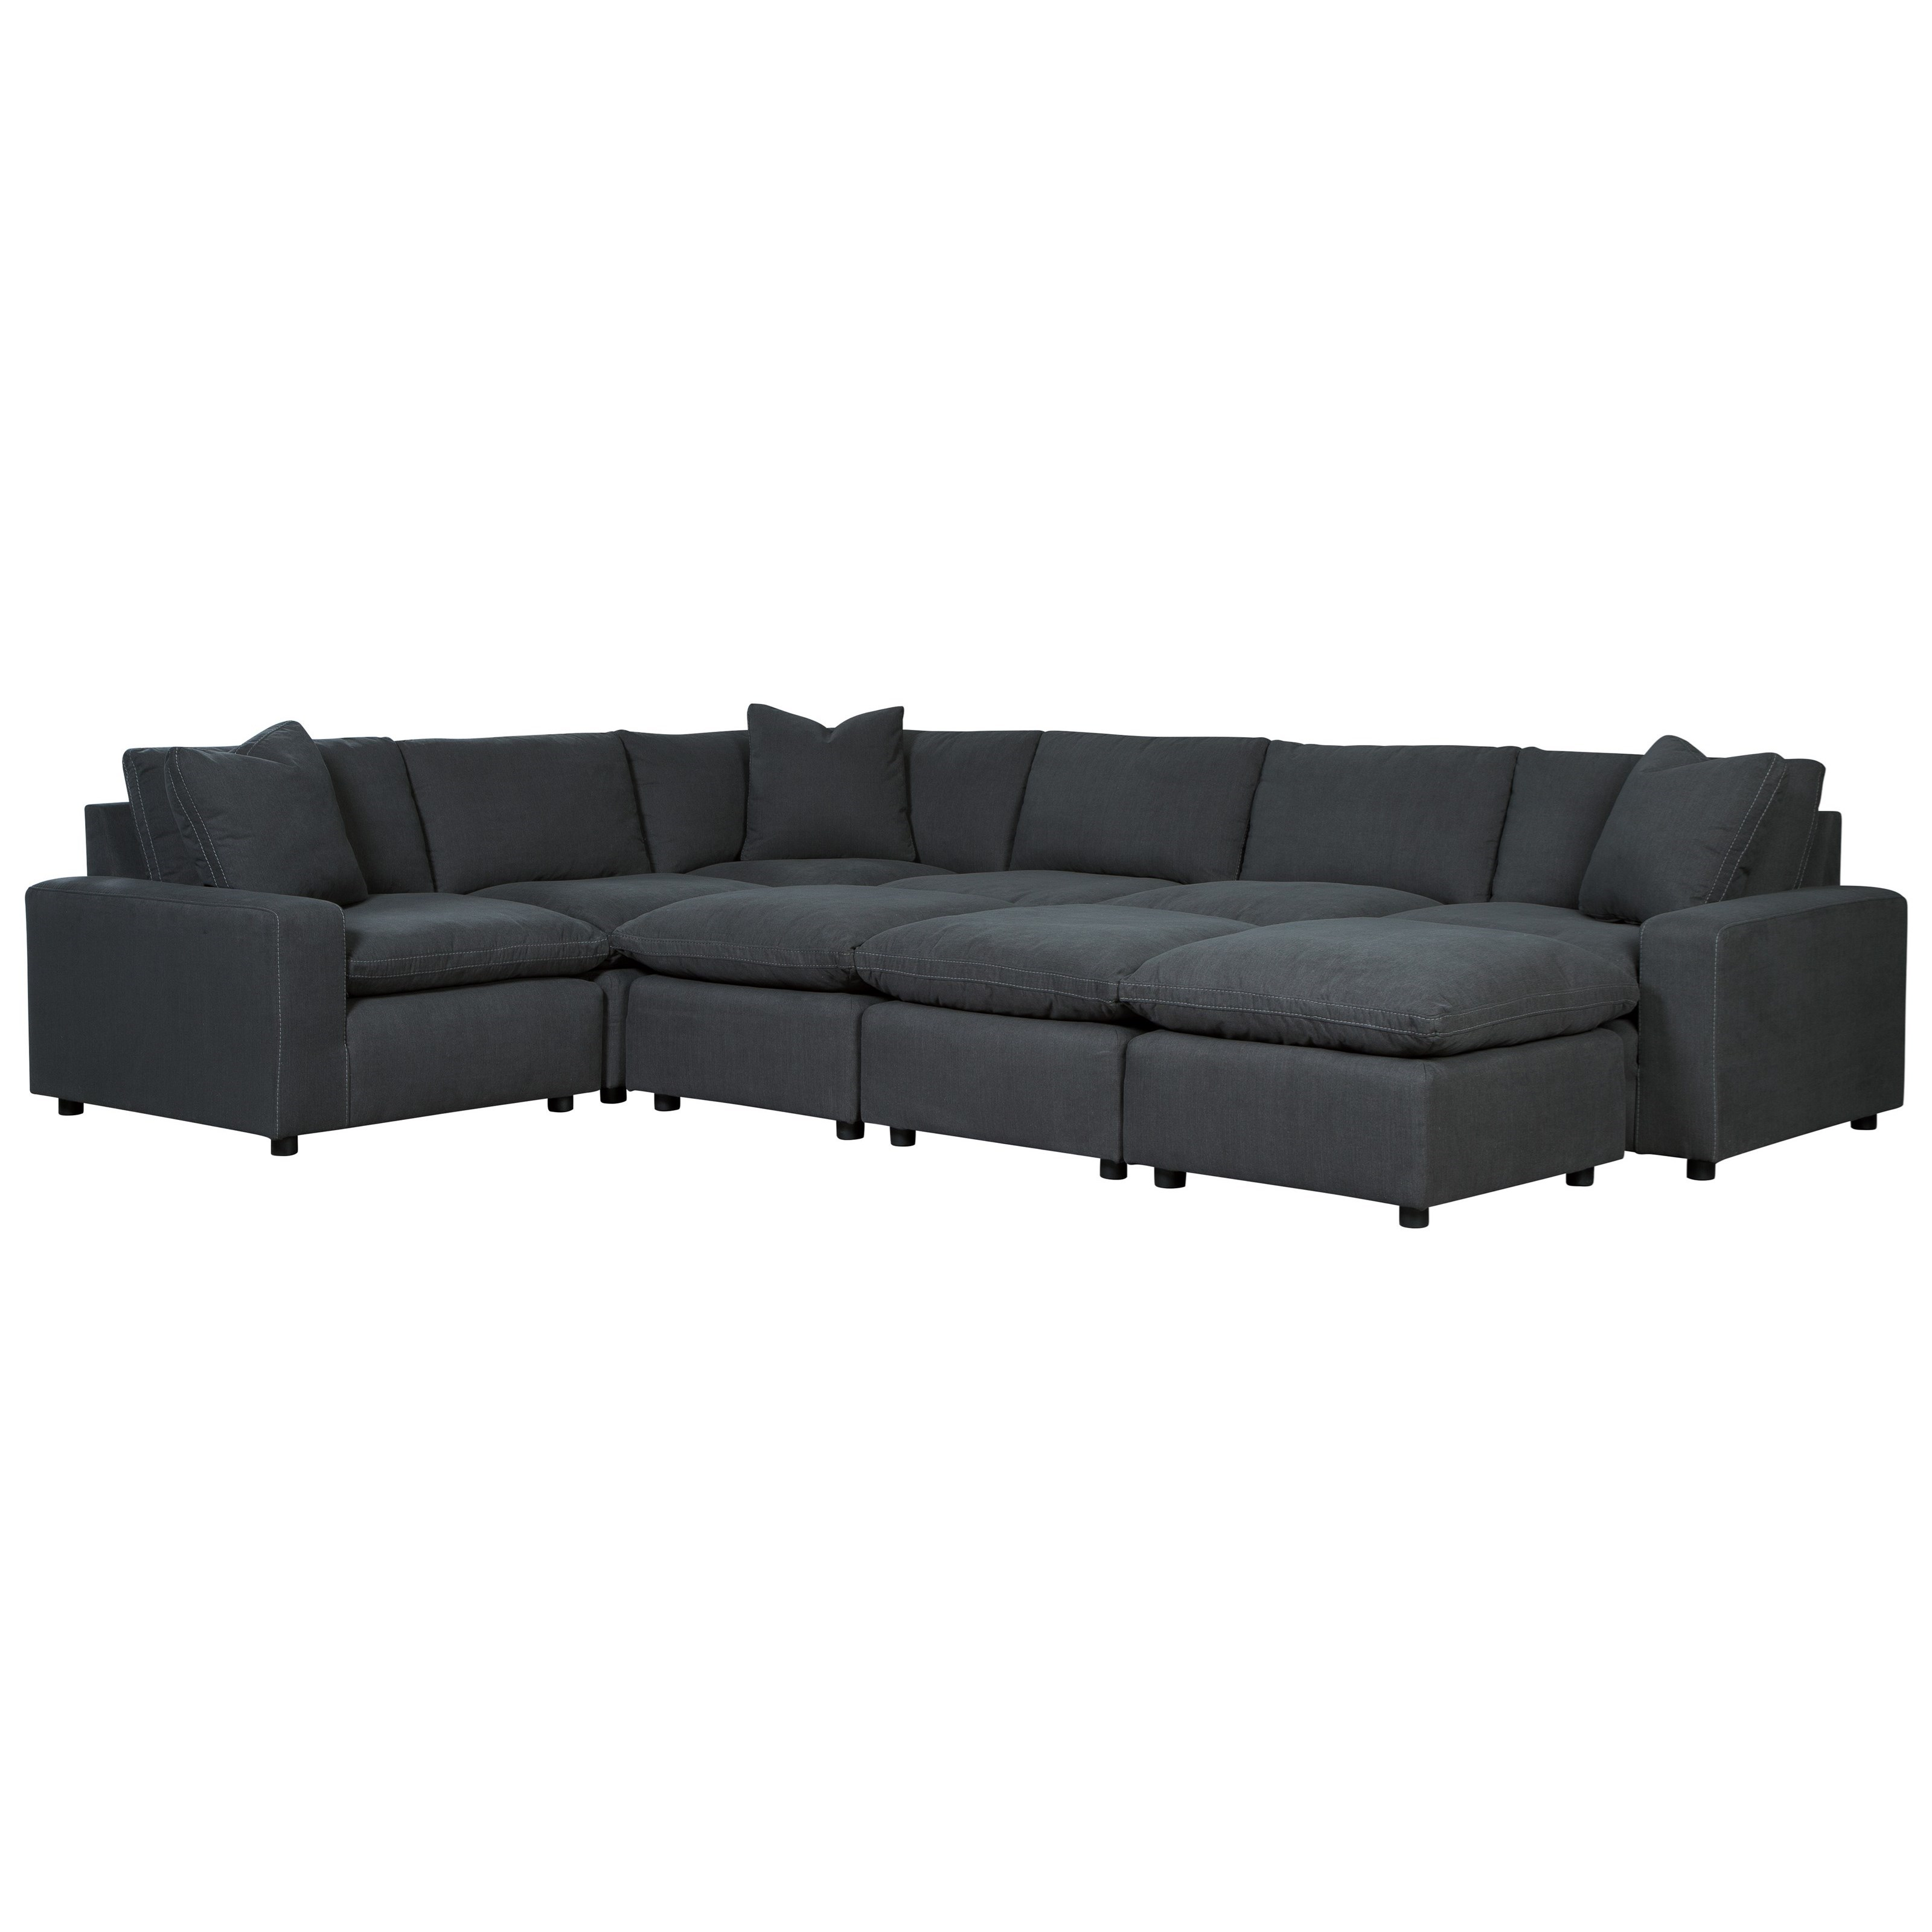 Savesto Sectional by Signature Design by Ashley at HomeWorld Furniture